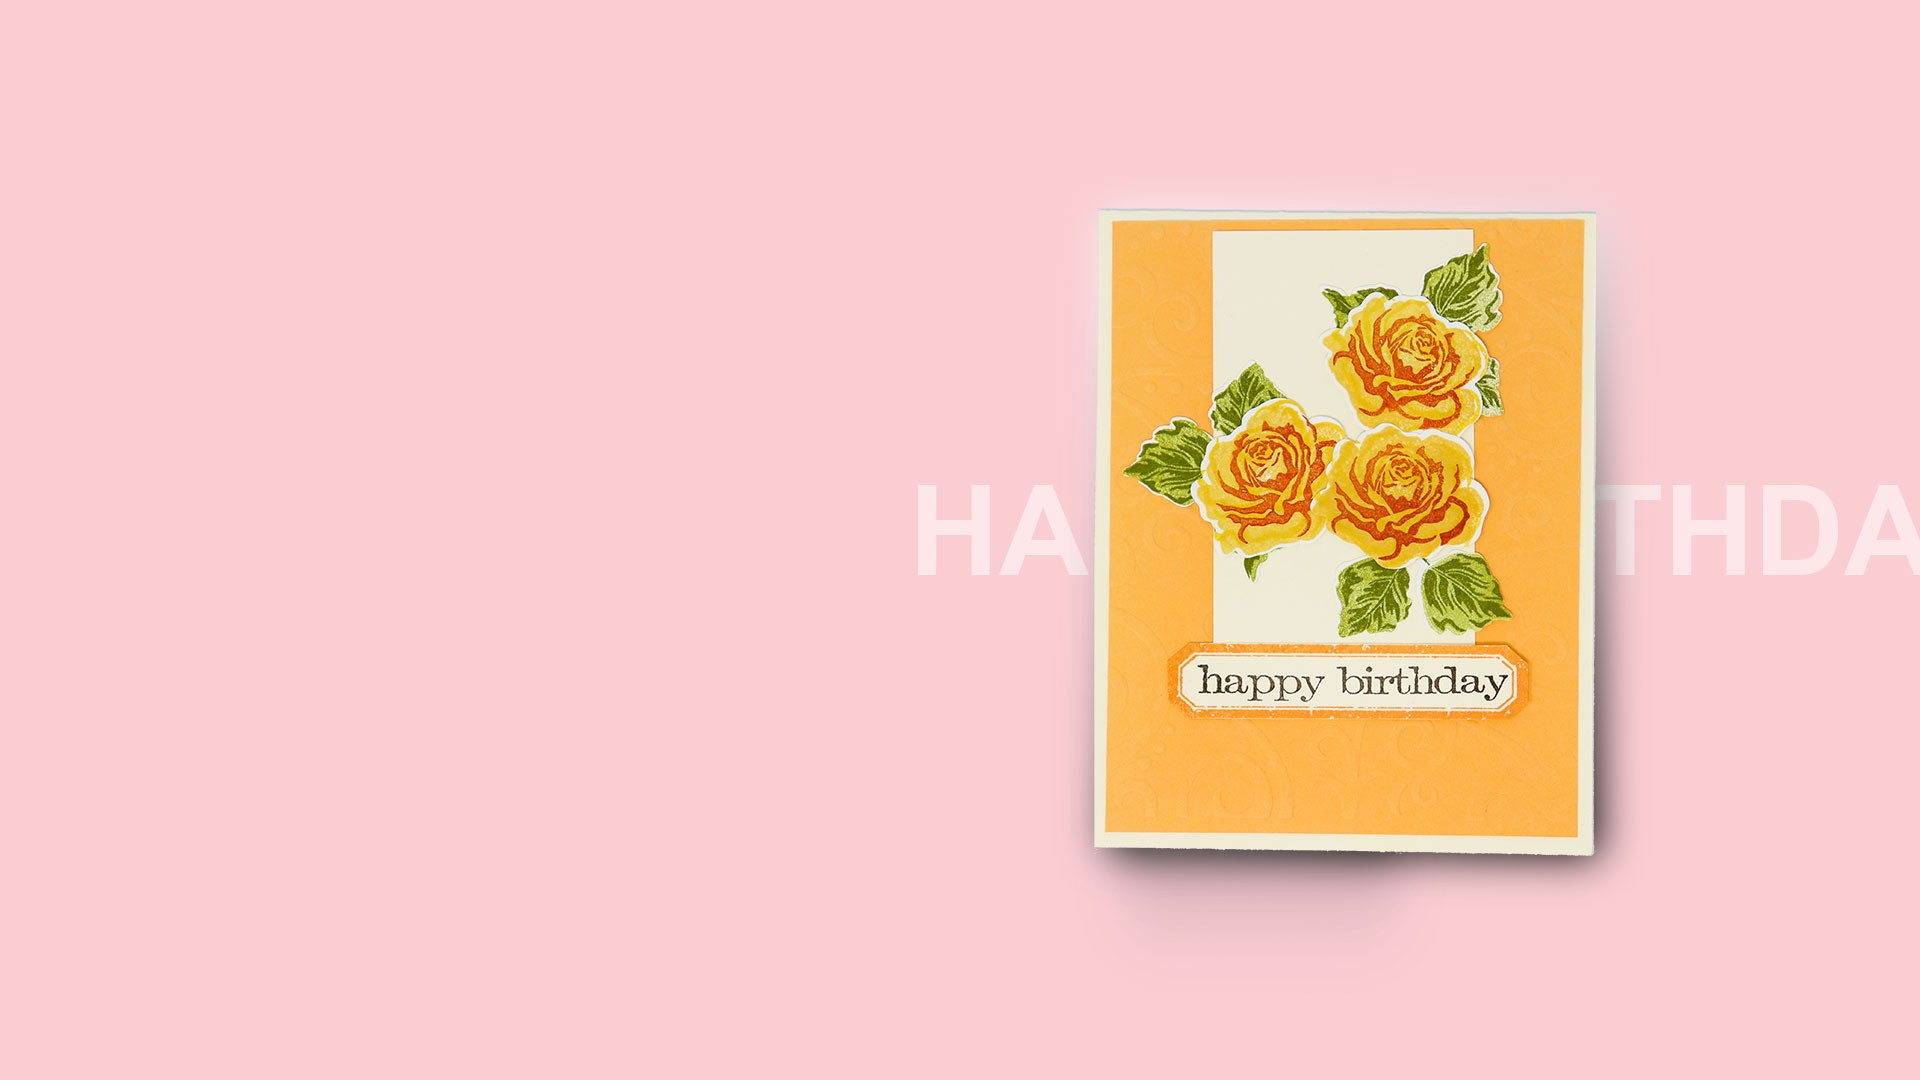 custom greeting cards - happy birthday